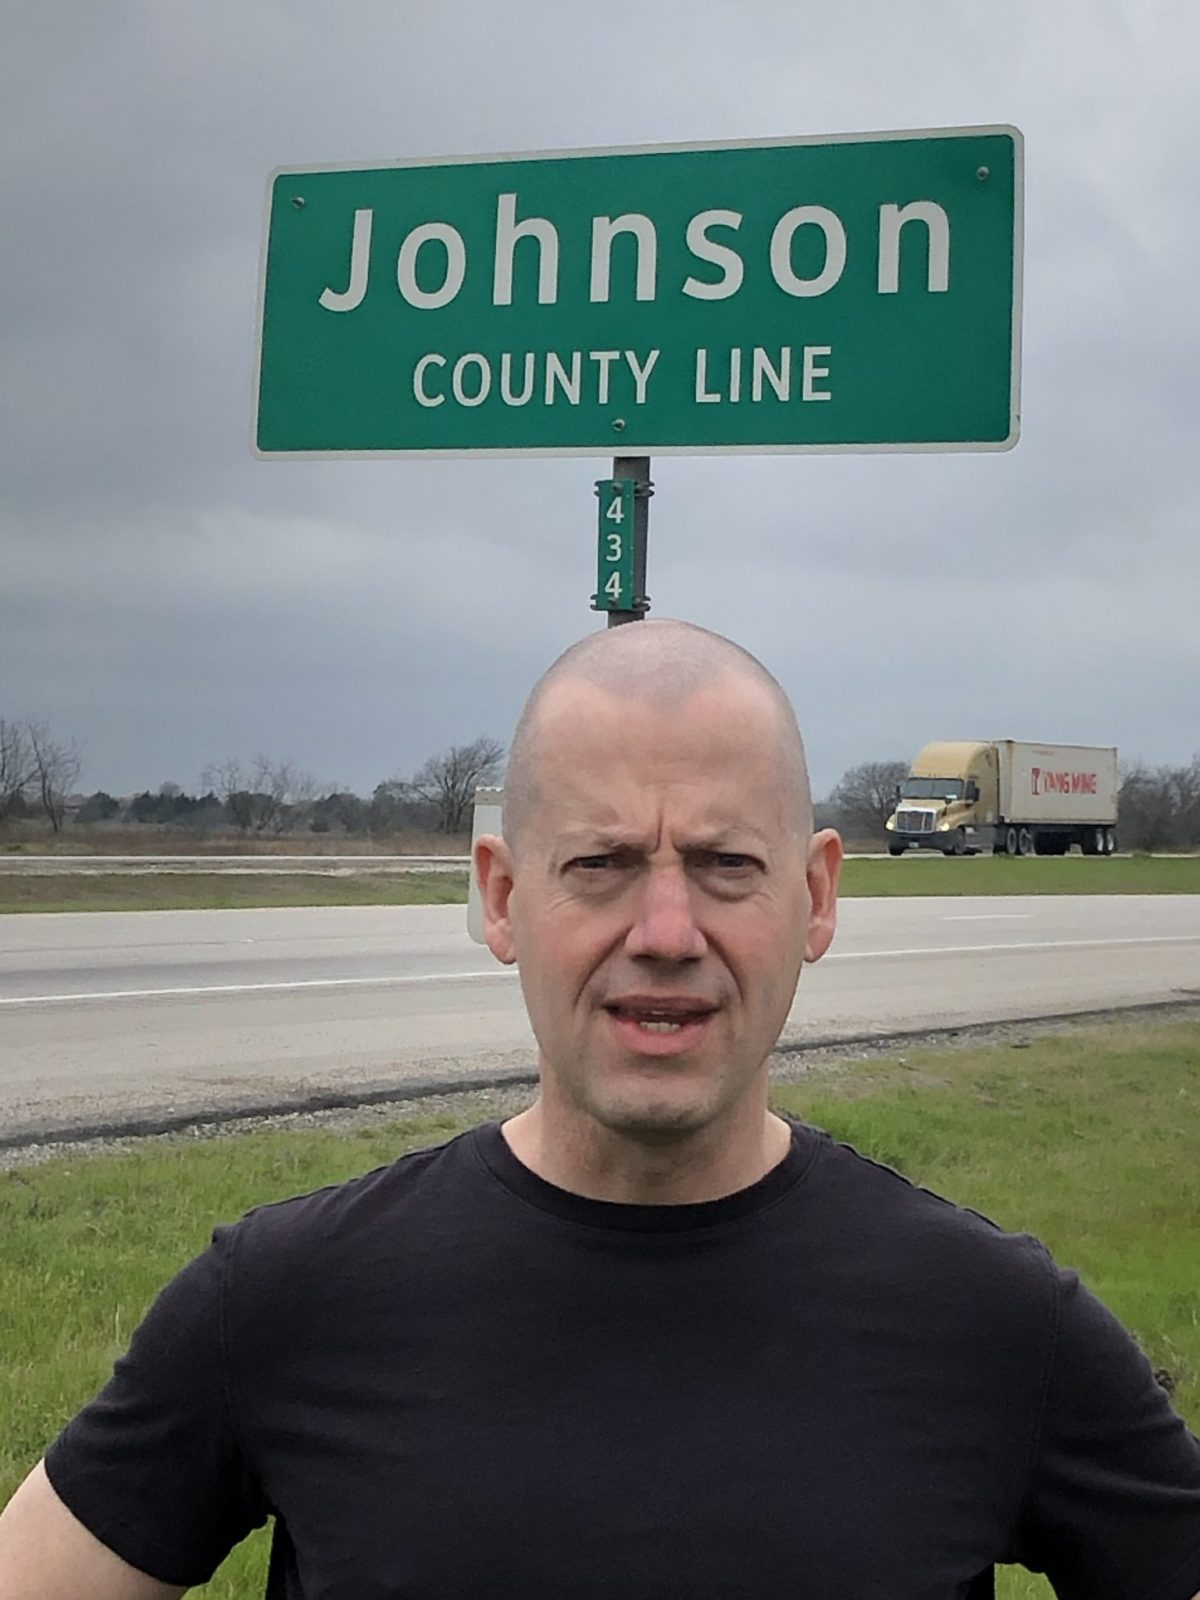 Jason Hull of We Buy Johnson County, Texas Homes at the Johnson County line